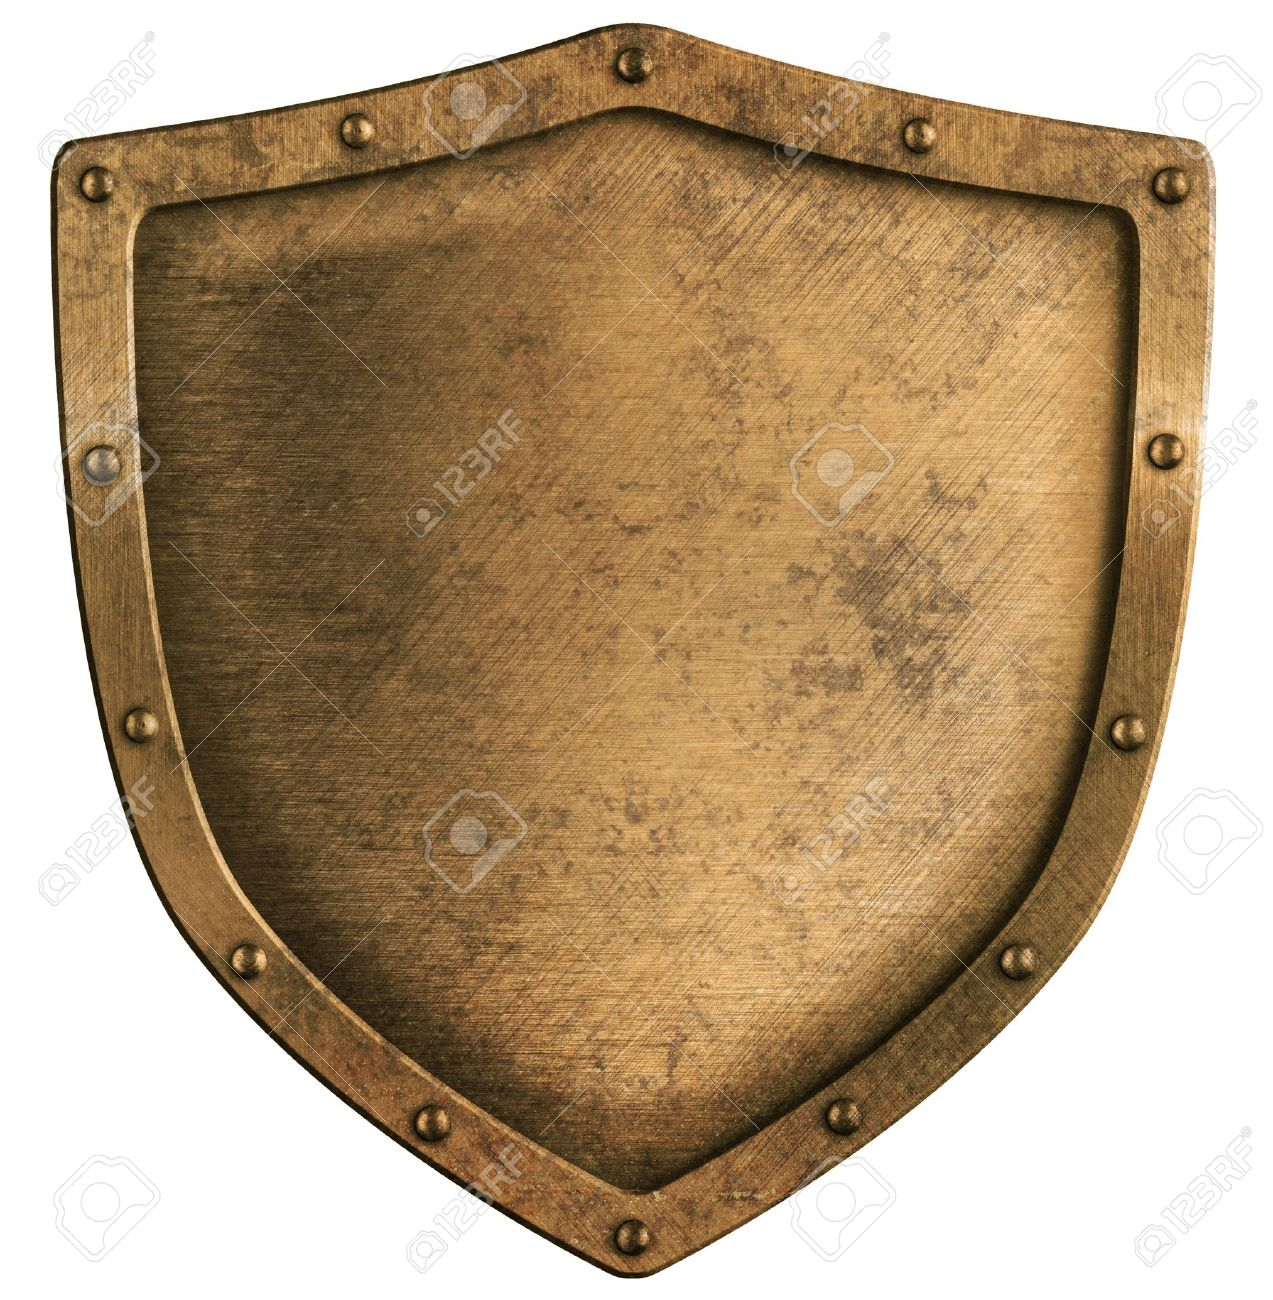 aged brass or bronze metal shield isolated on white Stock Photo - 13103962